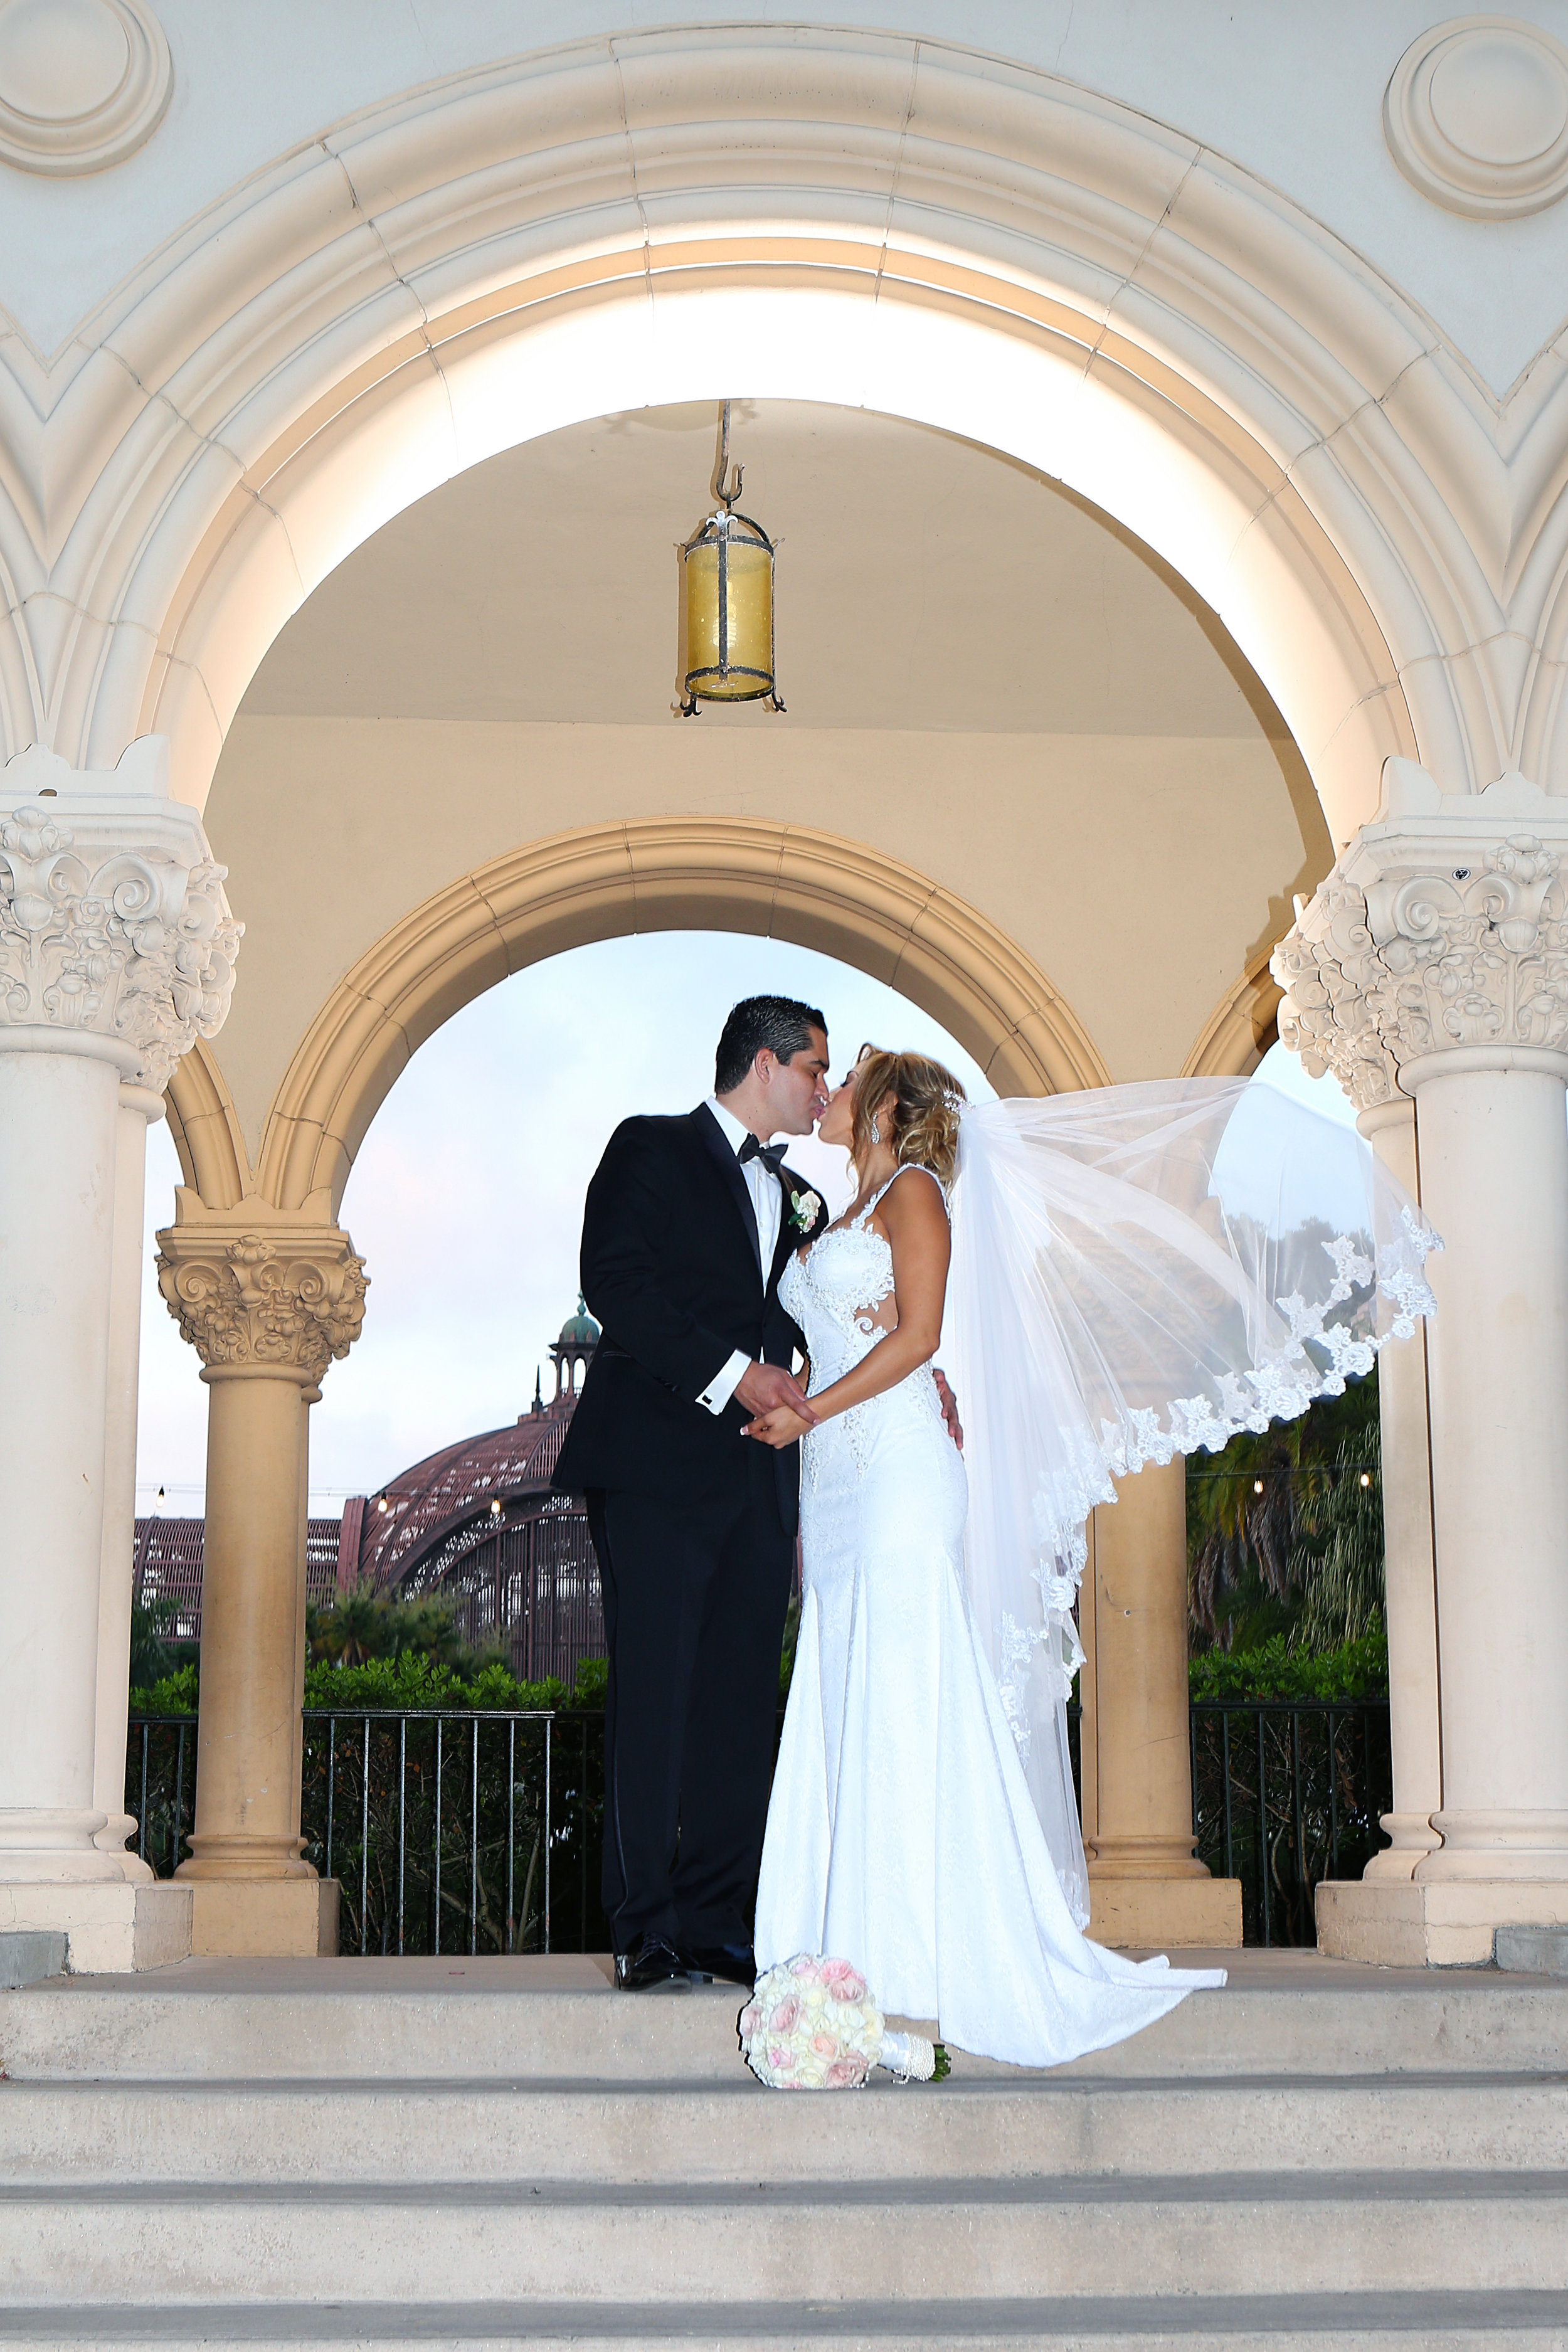 ShadowcatcherGalleryOne_SanDiegoWeddingPhotogrpaher_012.JPG